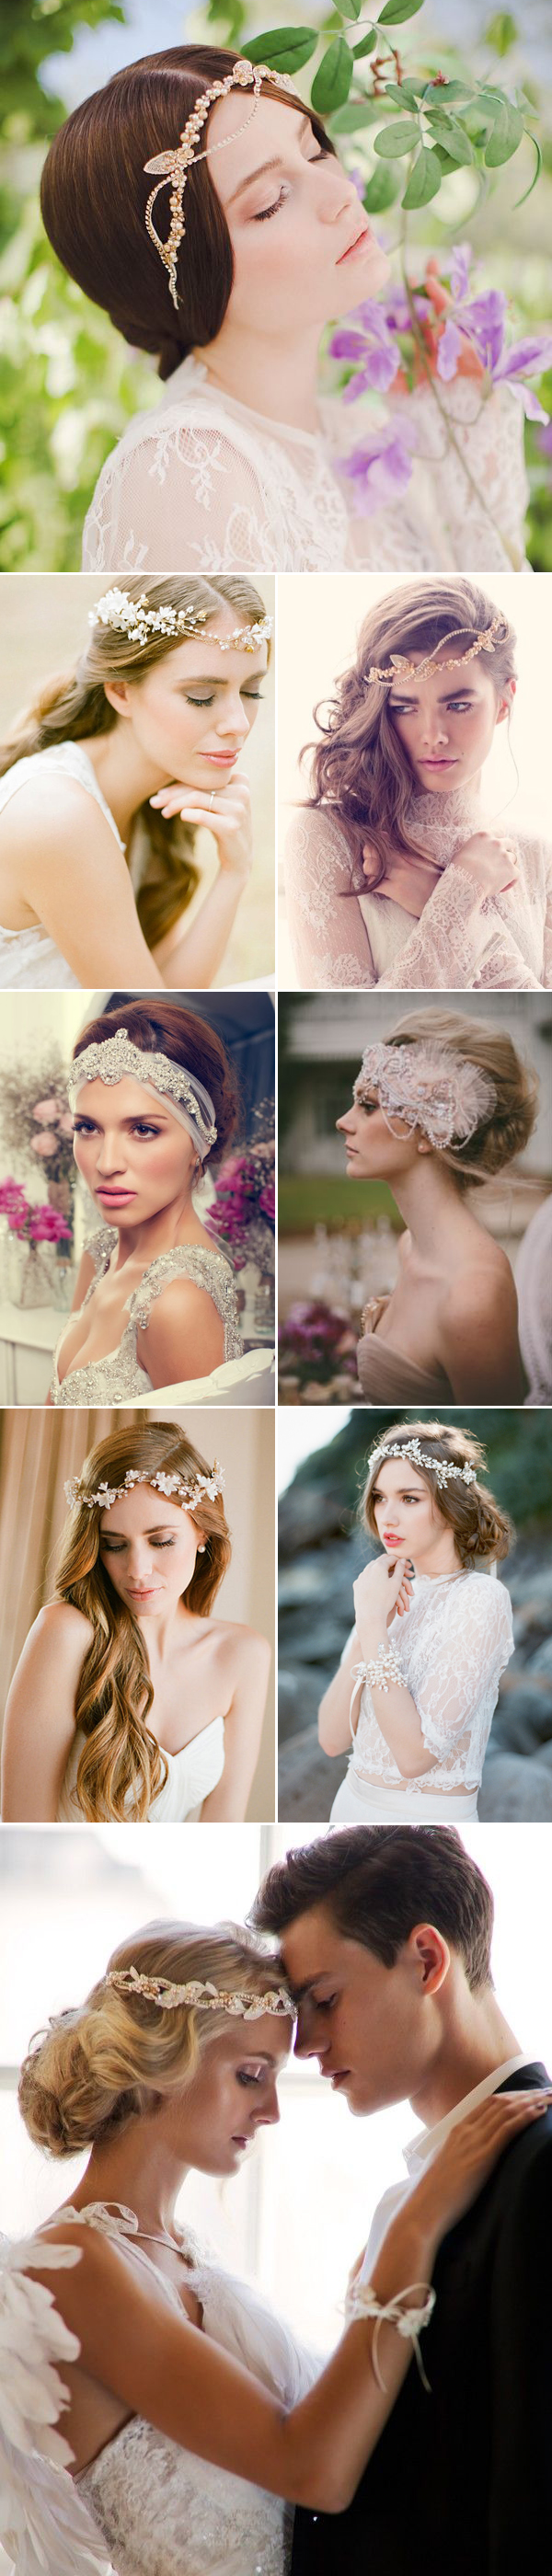 Headband Designers (from the top, left to right): Jannie Baltzer / Percy handmade / Jannie Baltzer / Anna Campbell / Viktoria Novak / Percy handmade / Bride La Boheme / Jannie Baltzer